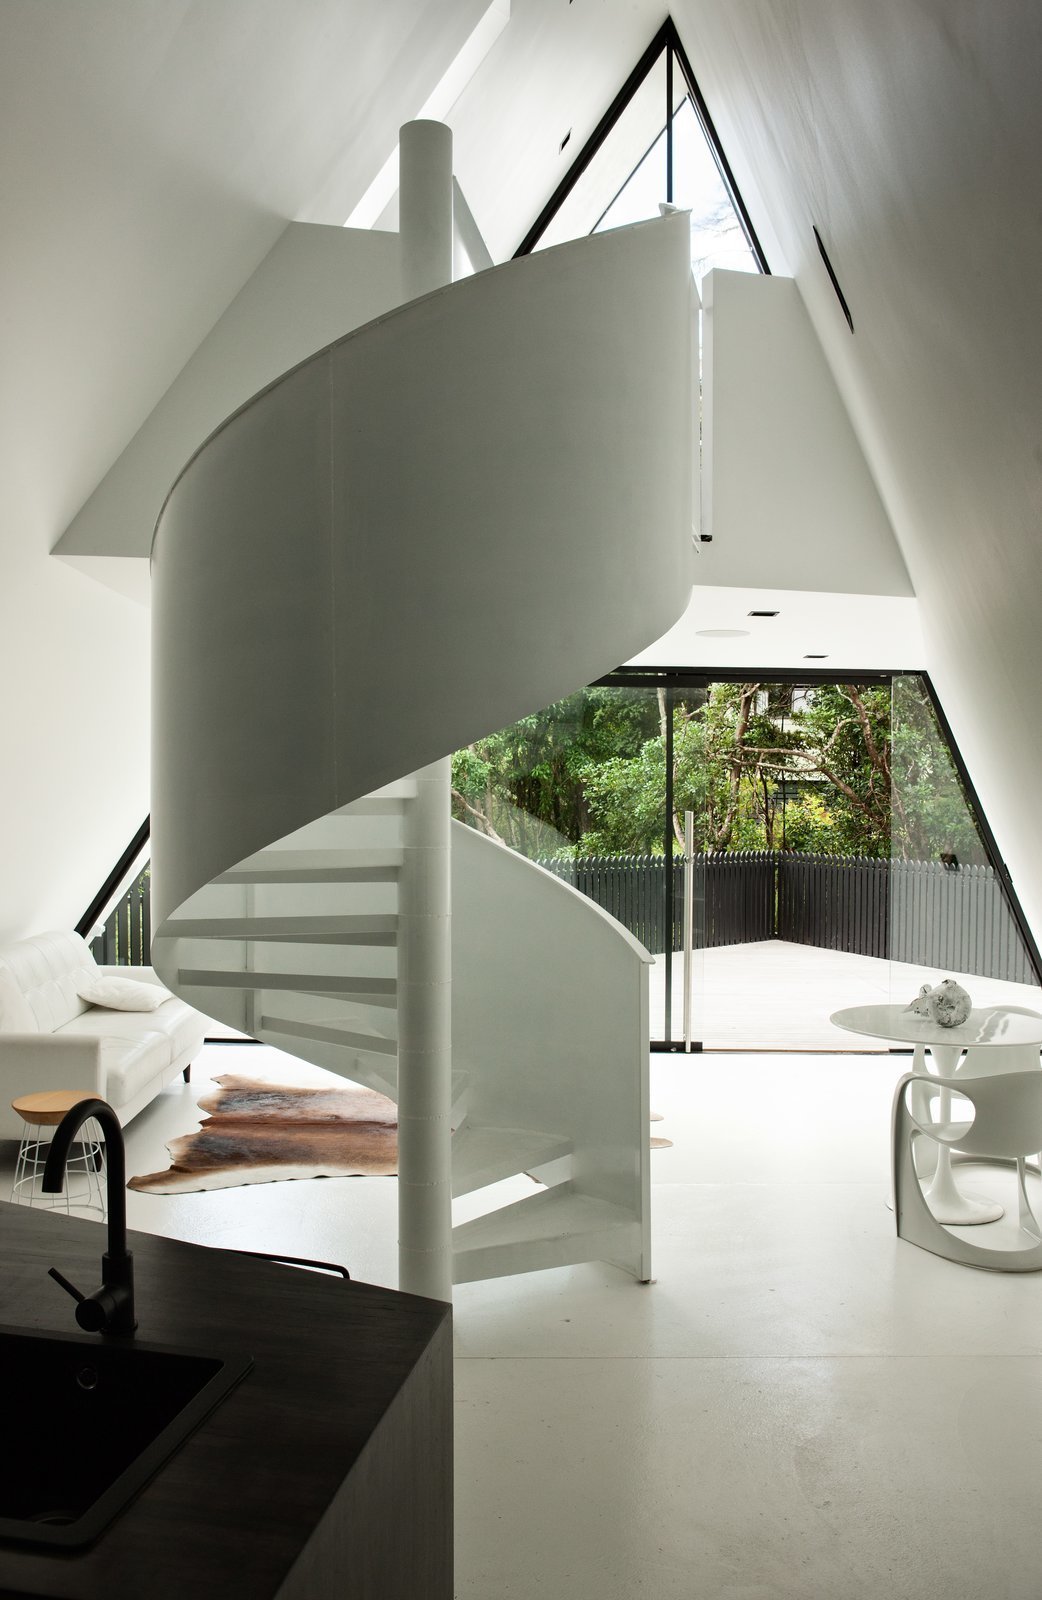 Staircase, Metal Railing, and Metal Tread The sharp ridgeline and soaring soffit reference a tent-like experience in an architecturally elegant way.  Photo 4 of 8 in Stay in a Tent-Inspired A-Frame Cabin in the New Zealand Rain Forest